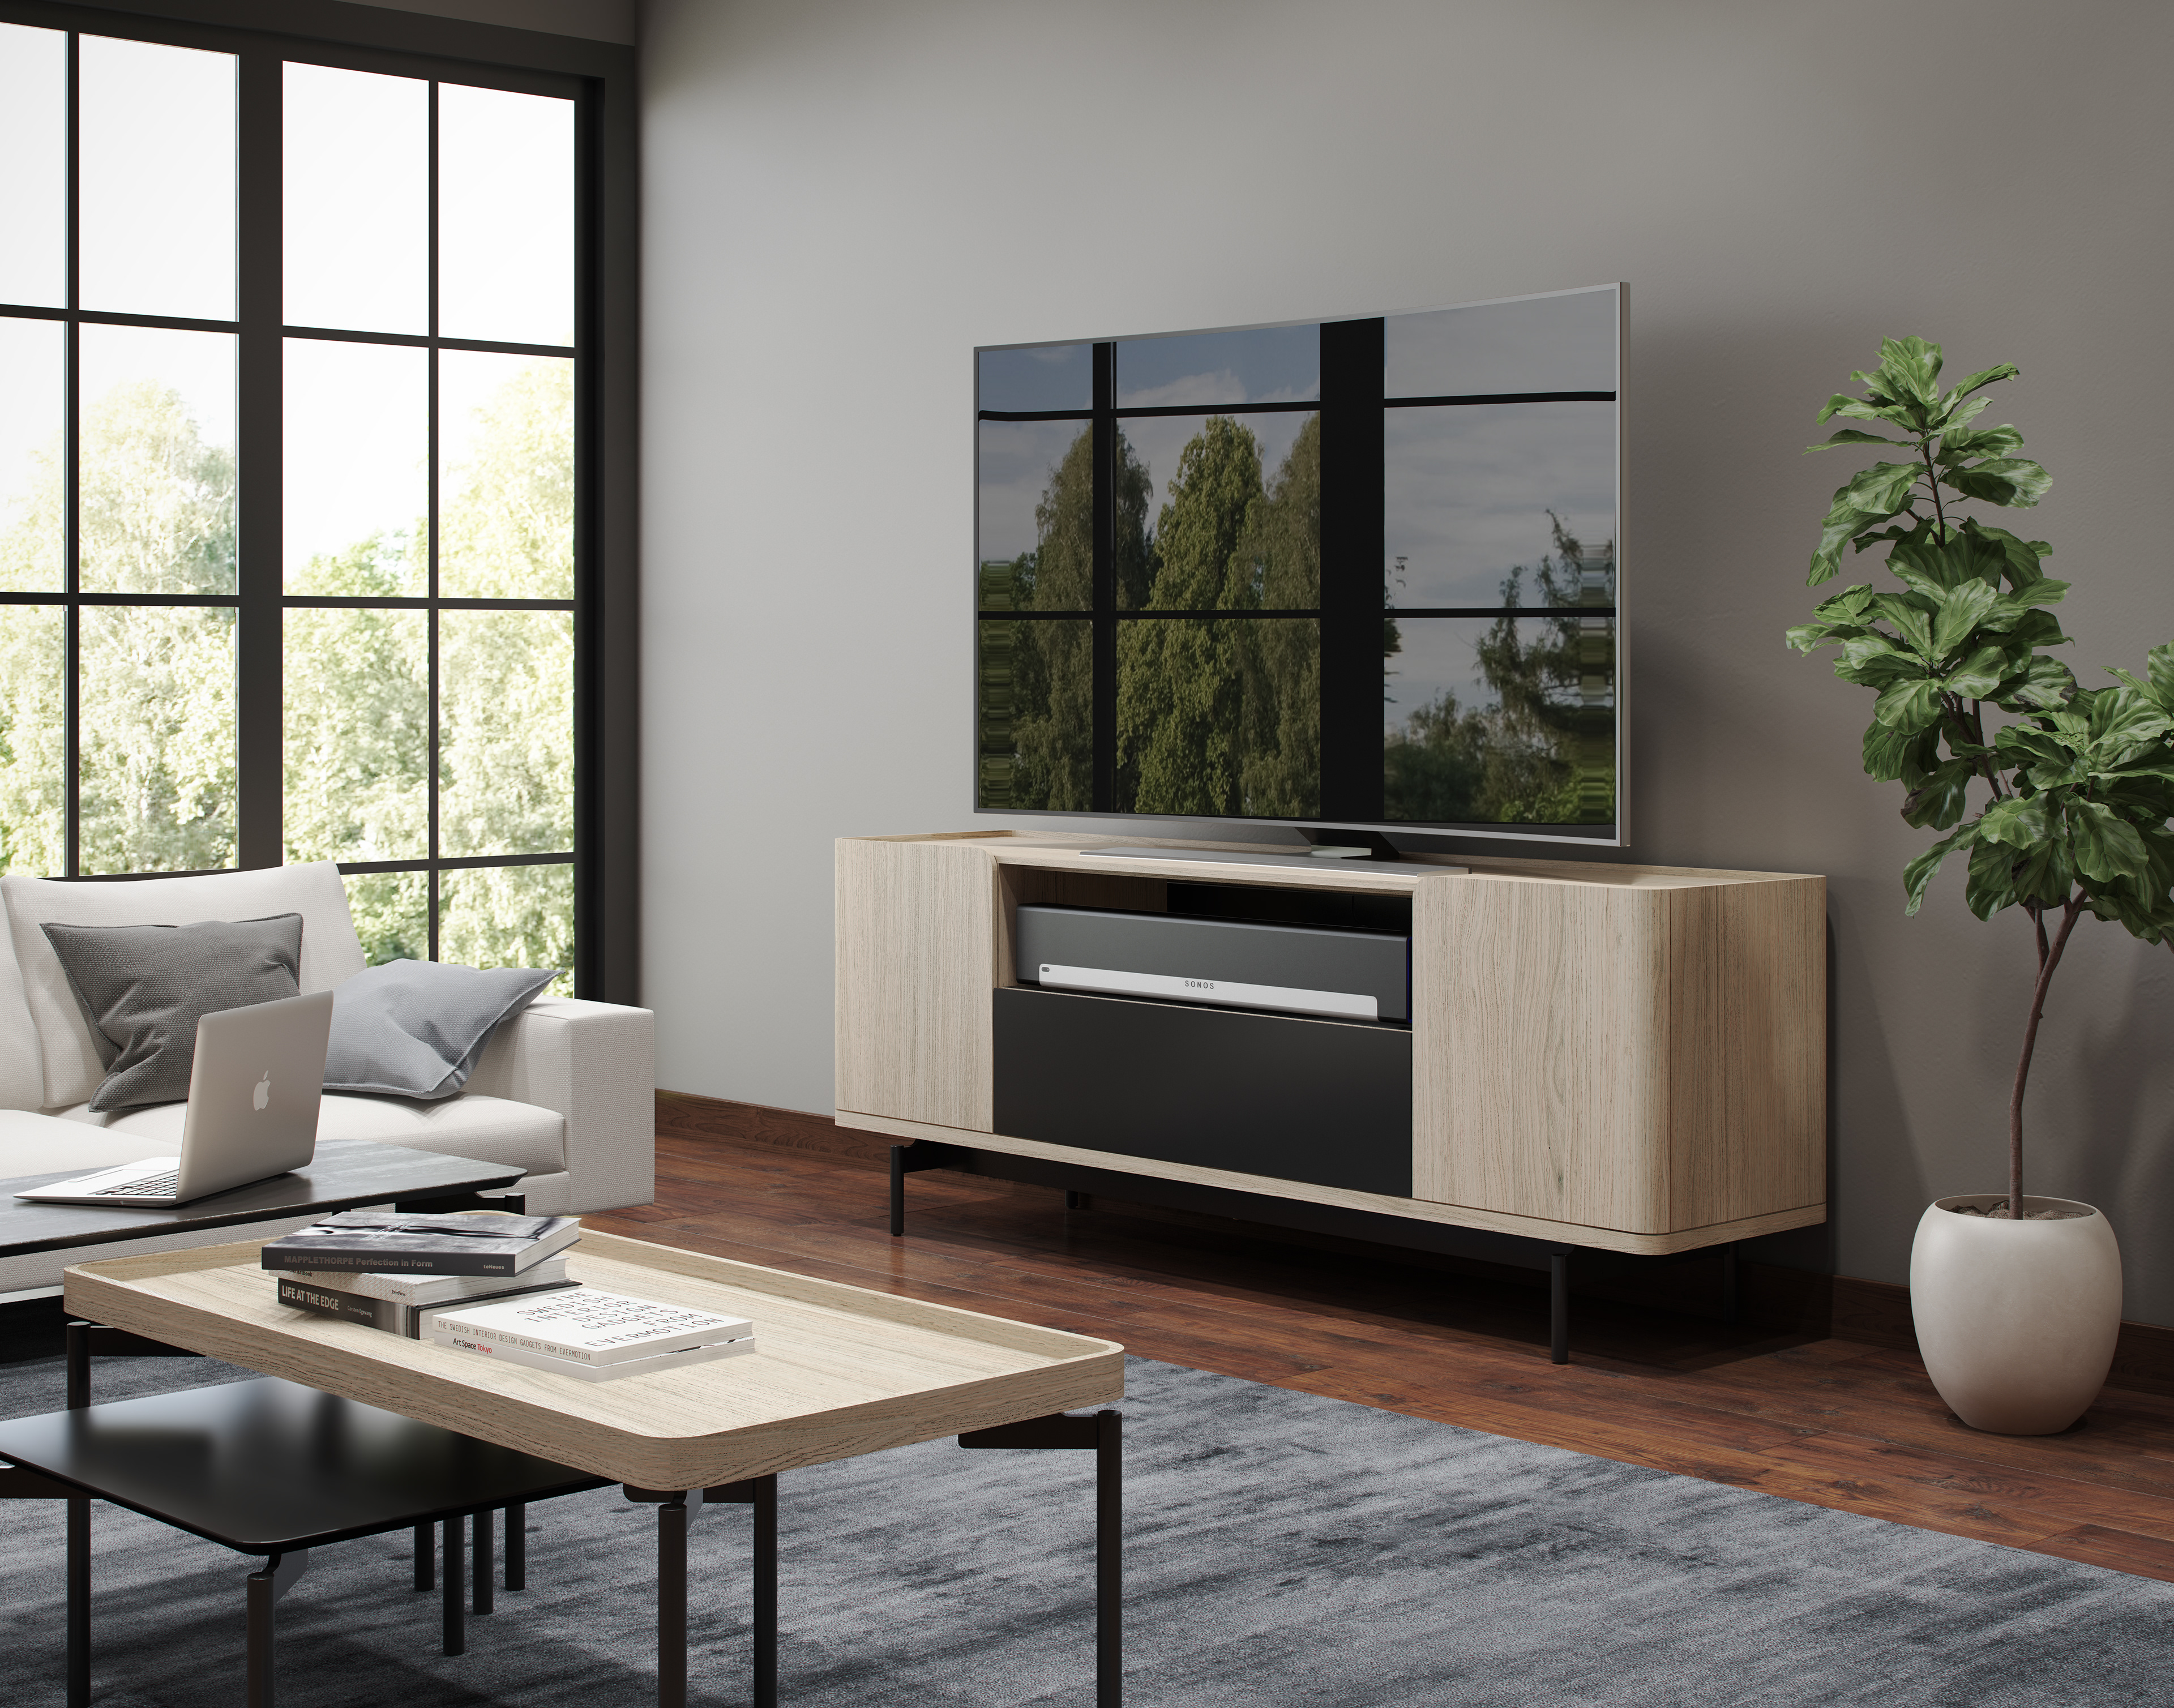 entertainment bdi grandkids speaker elements in theather cupboard photo place would kids of tv audio ikea theatre video traditional bookshelf theater room furniture office glamorous home small living gallery blue stereo the cabinet slate for photos and designs addison prefer stand stands component